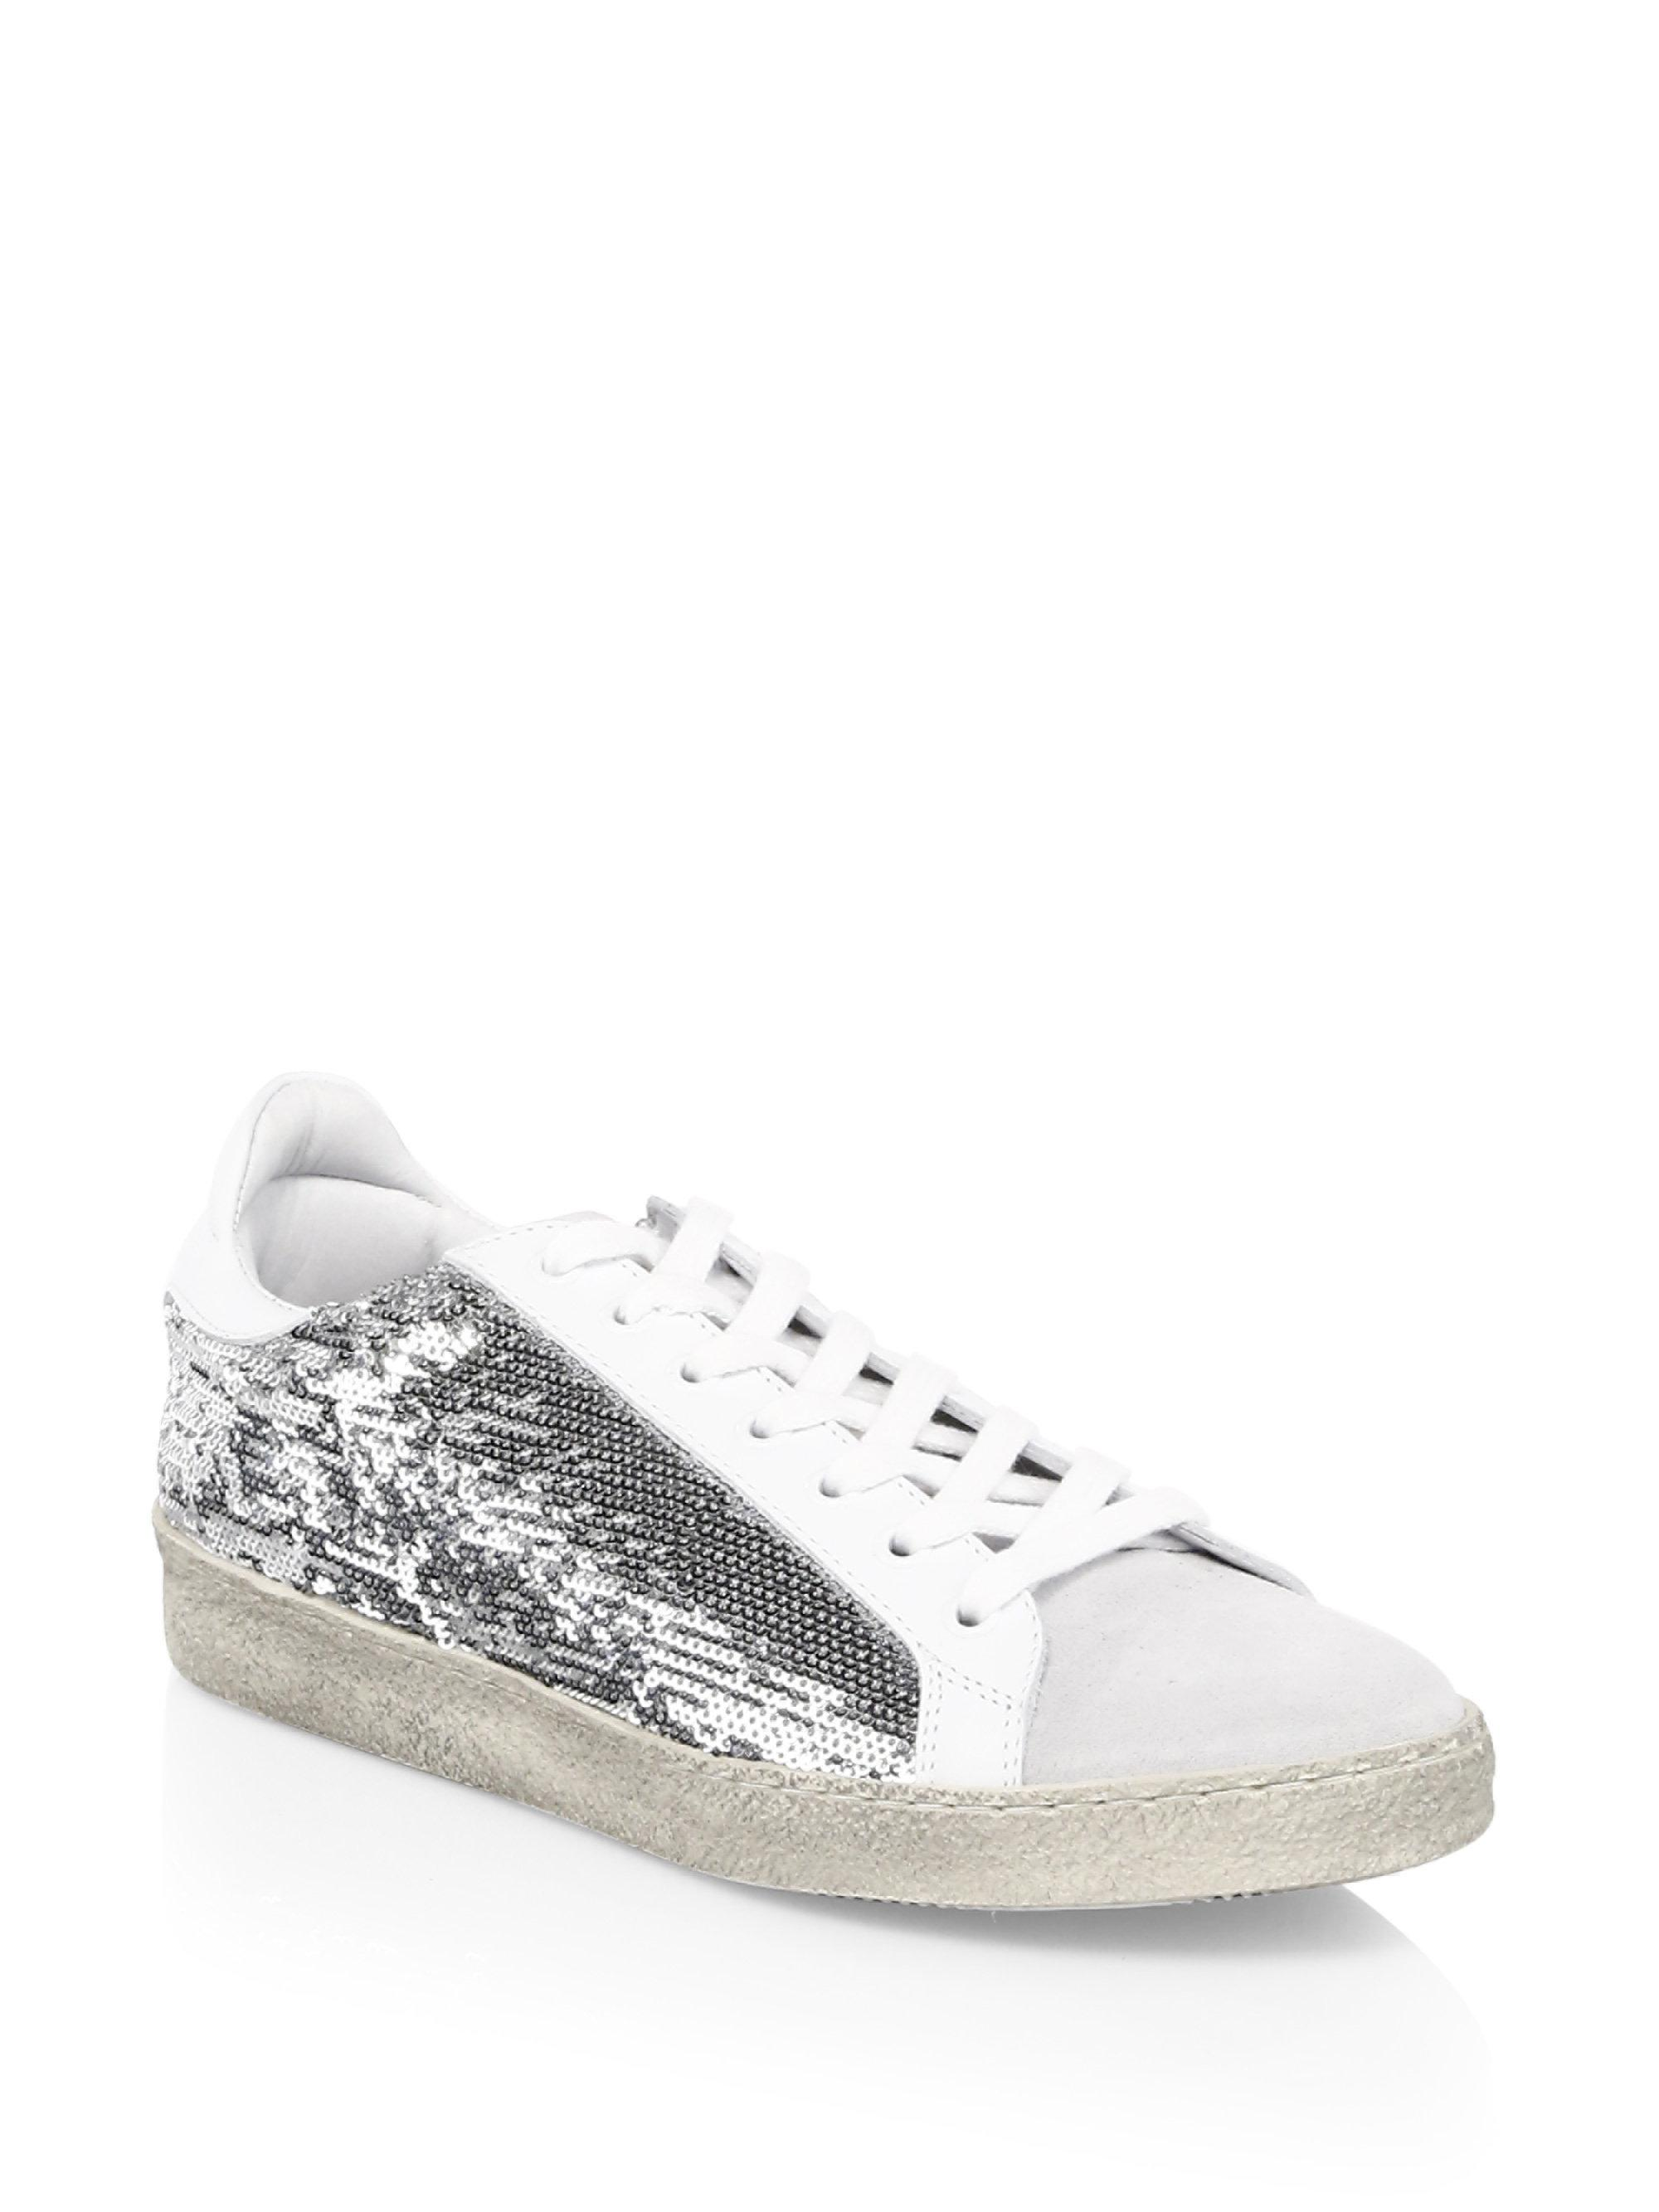 sequin panel Barthyno sneakers - Grey Iro 1K6a1q